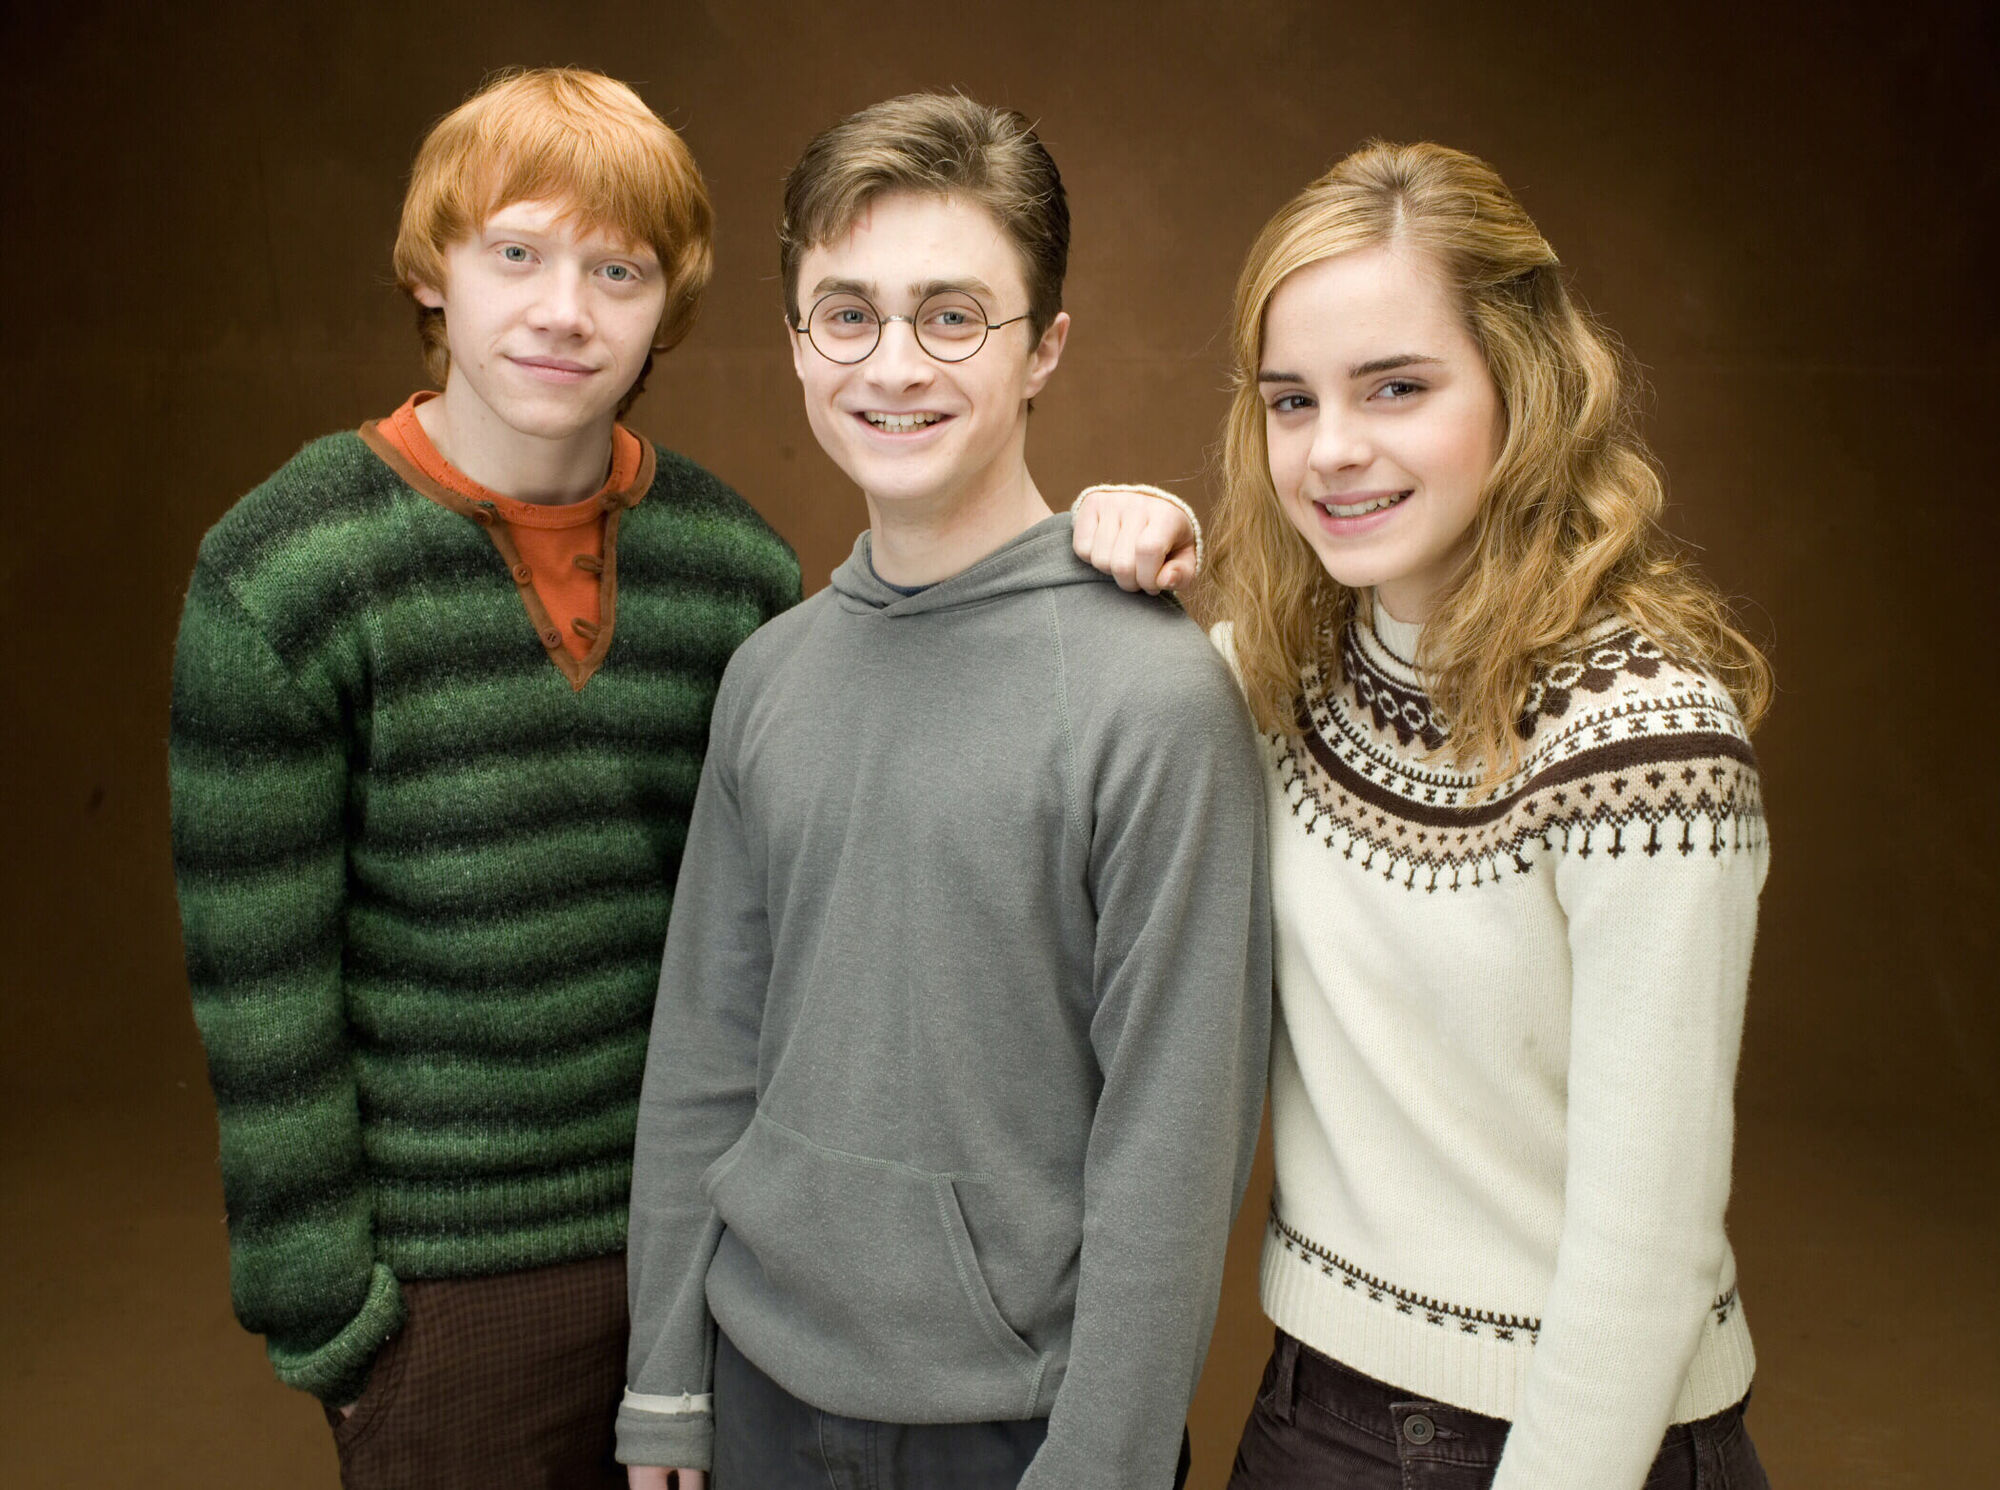 Trio harry potter wiki fandom powered by wikia - Hermione granger et ron weasley ...